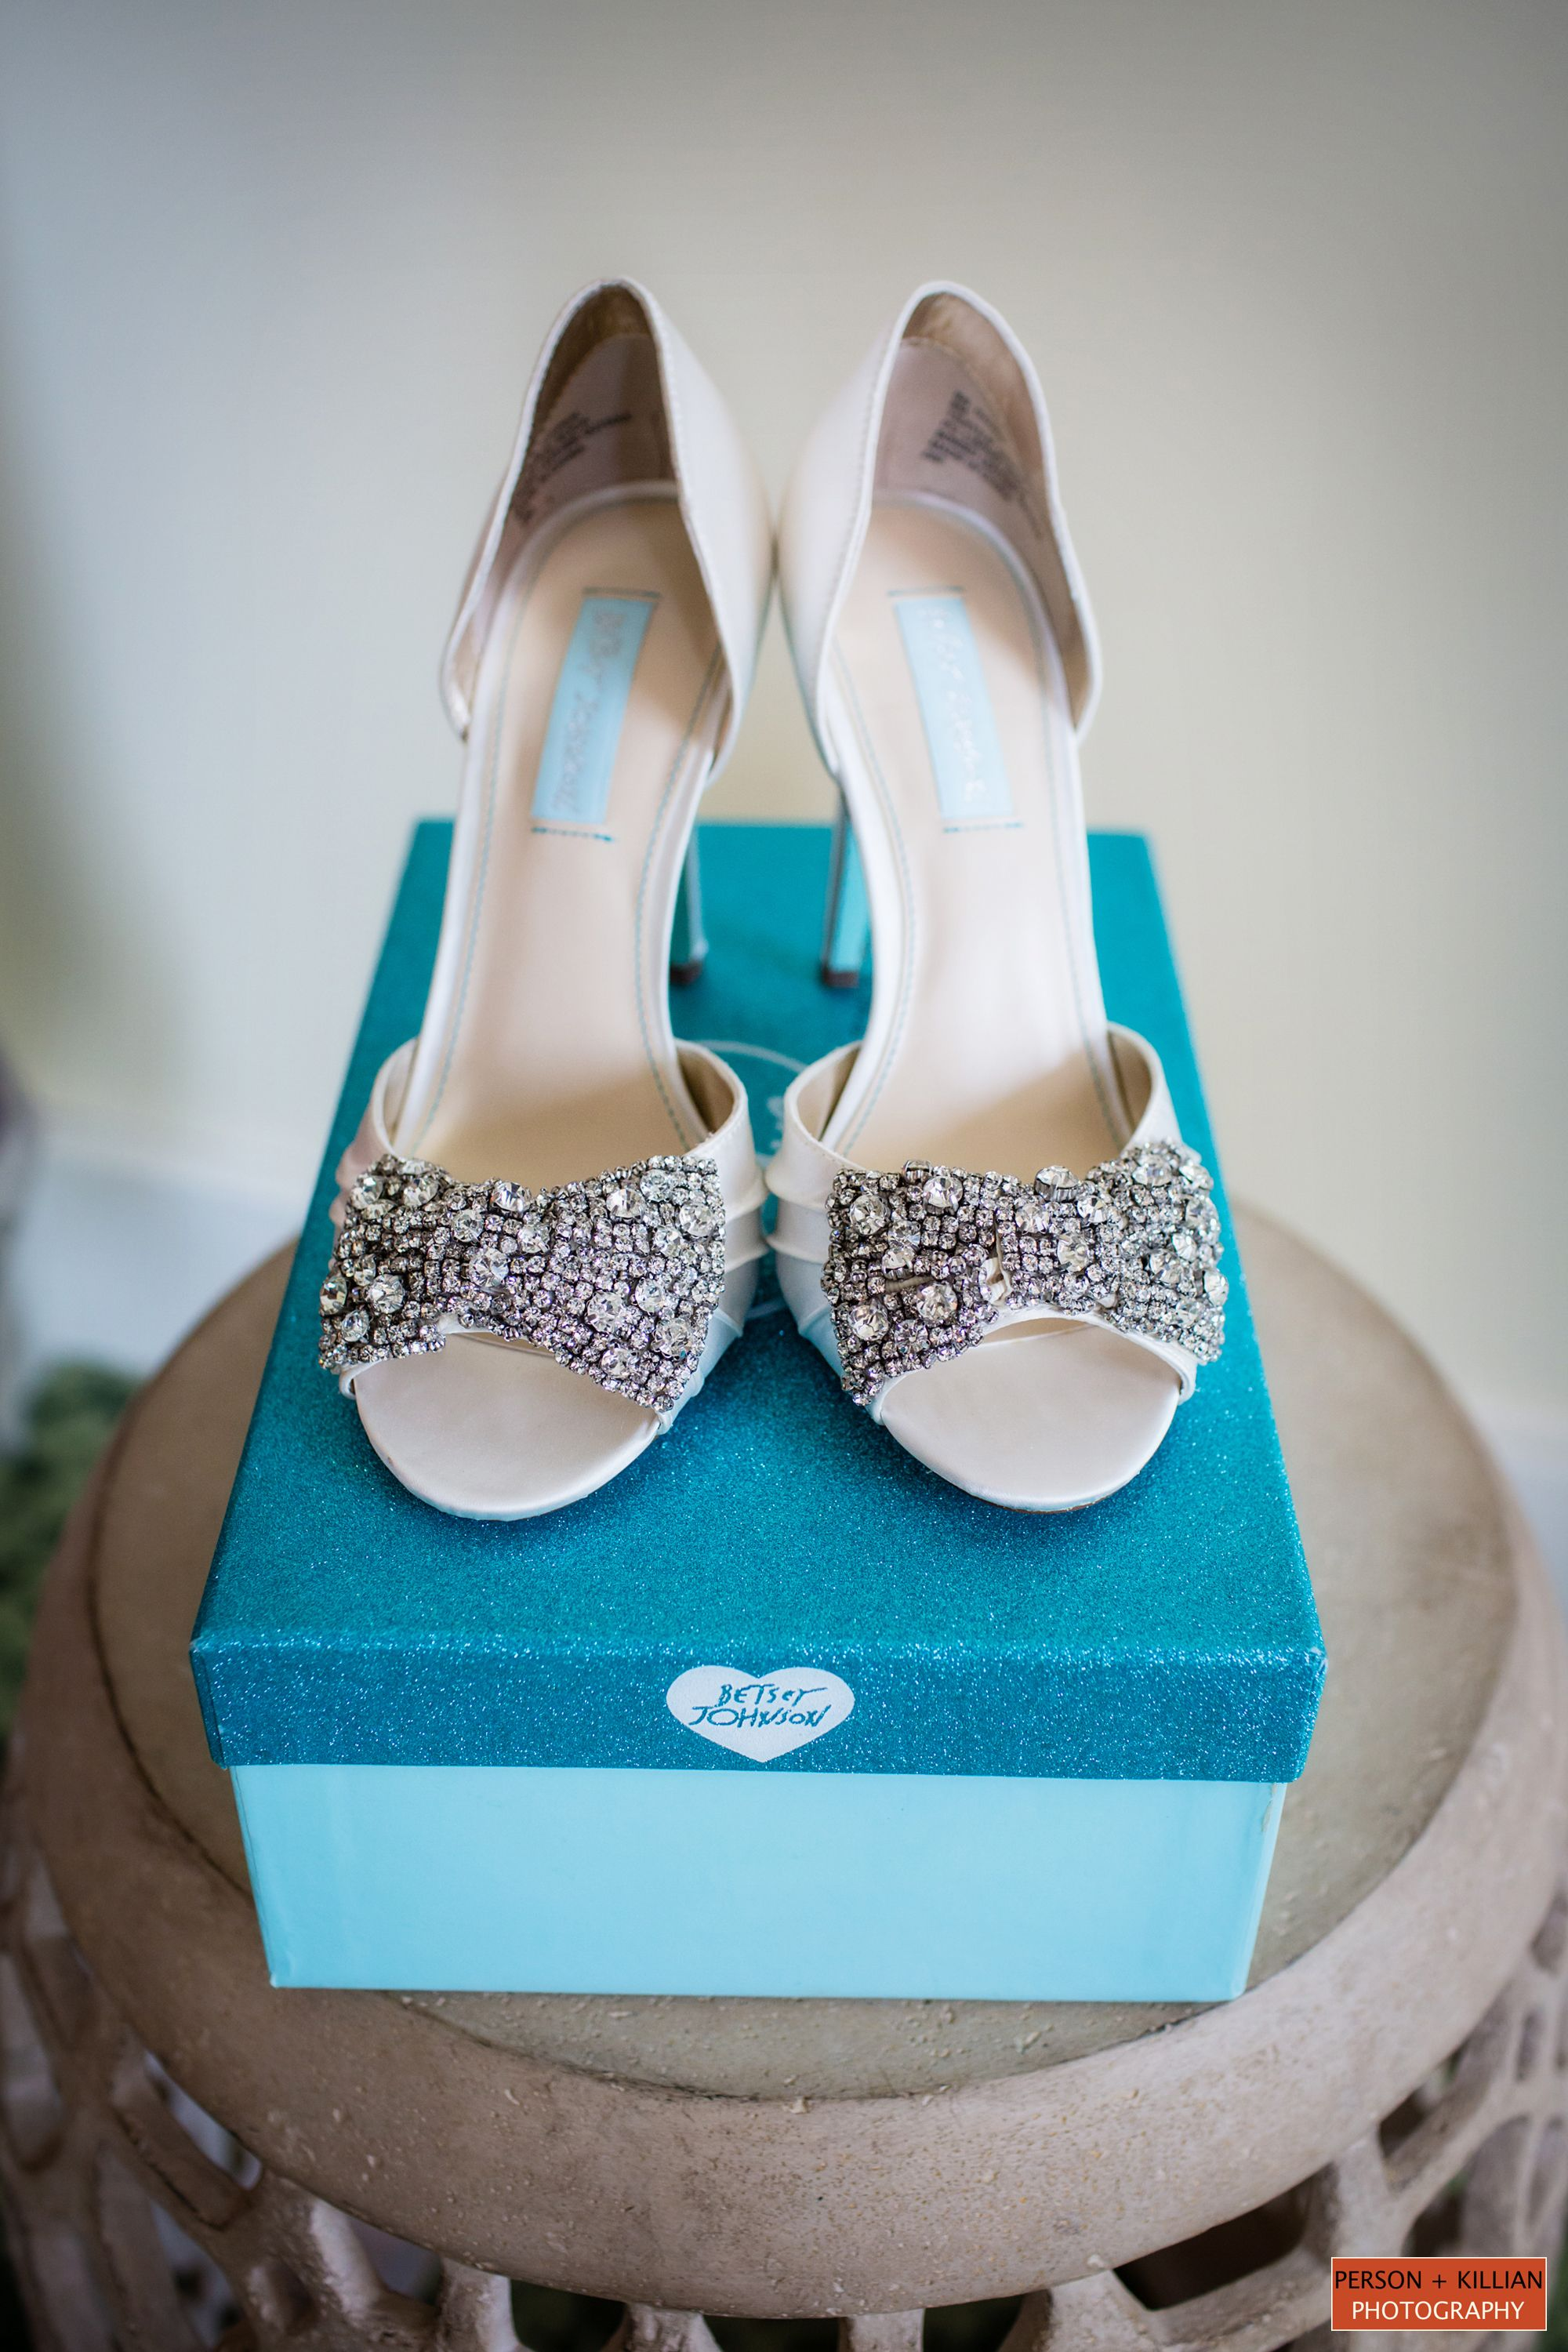 Boston Wedding Photography, Boston Event Photography, Wedding Shoe Inspiration, Bridal Shoe Inspiration, Silver Wedding Shoes, Silver Wedding High Heels, Betsey Johnson Wedding Shoes, Sparkly Wedding Shoes